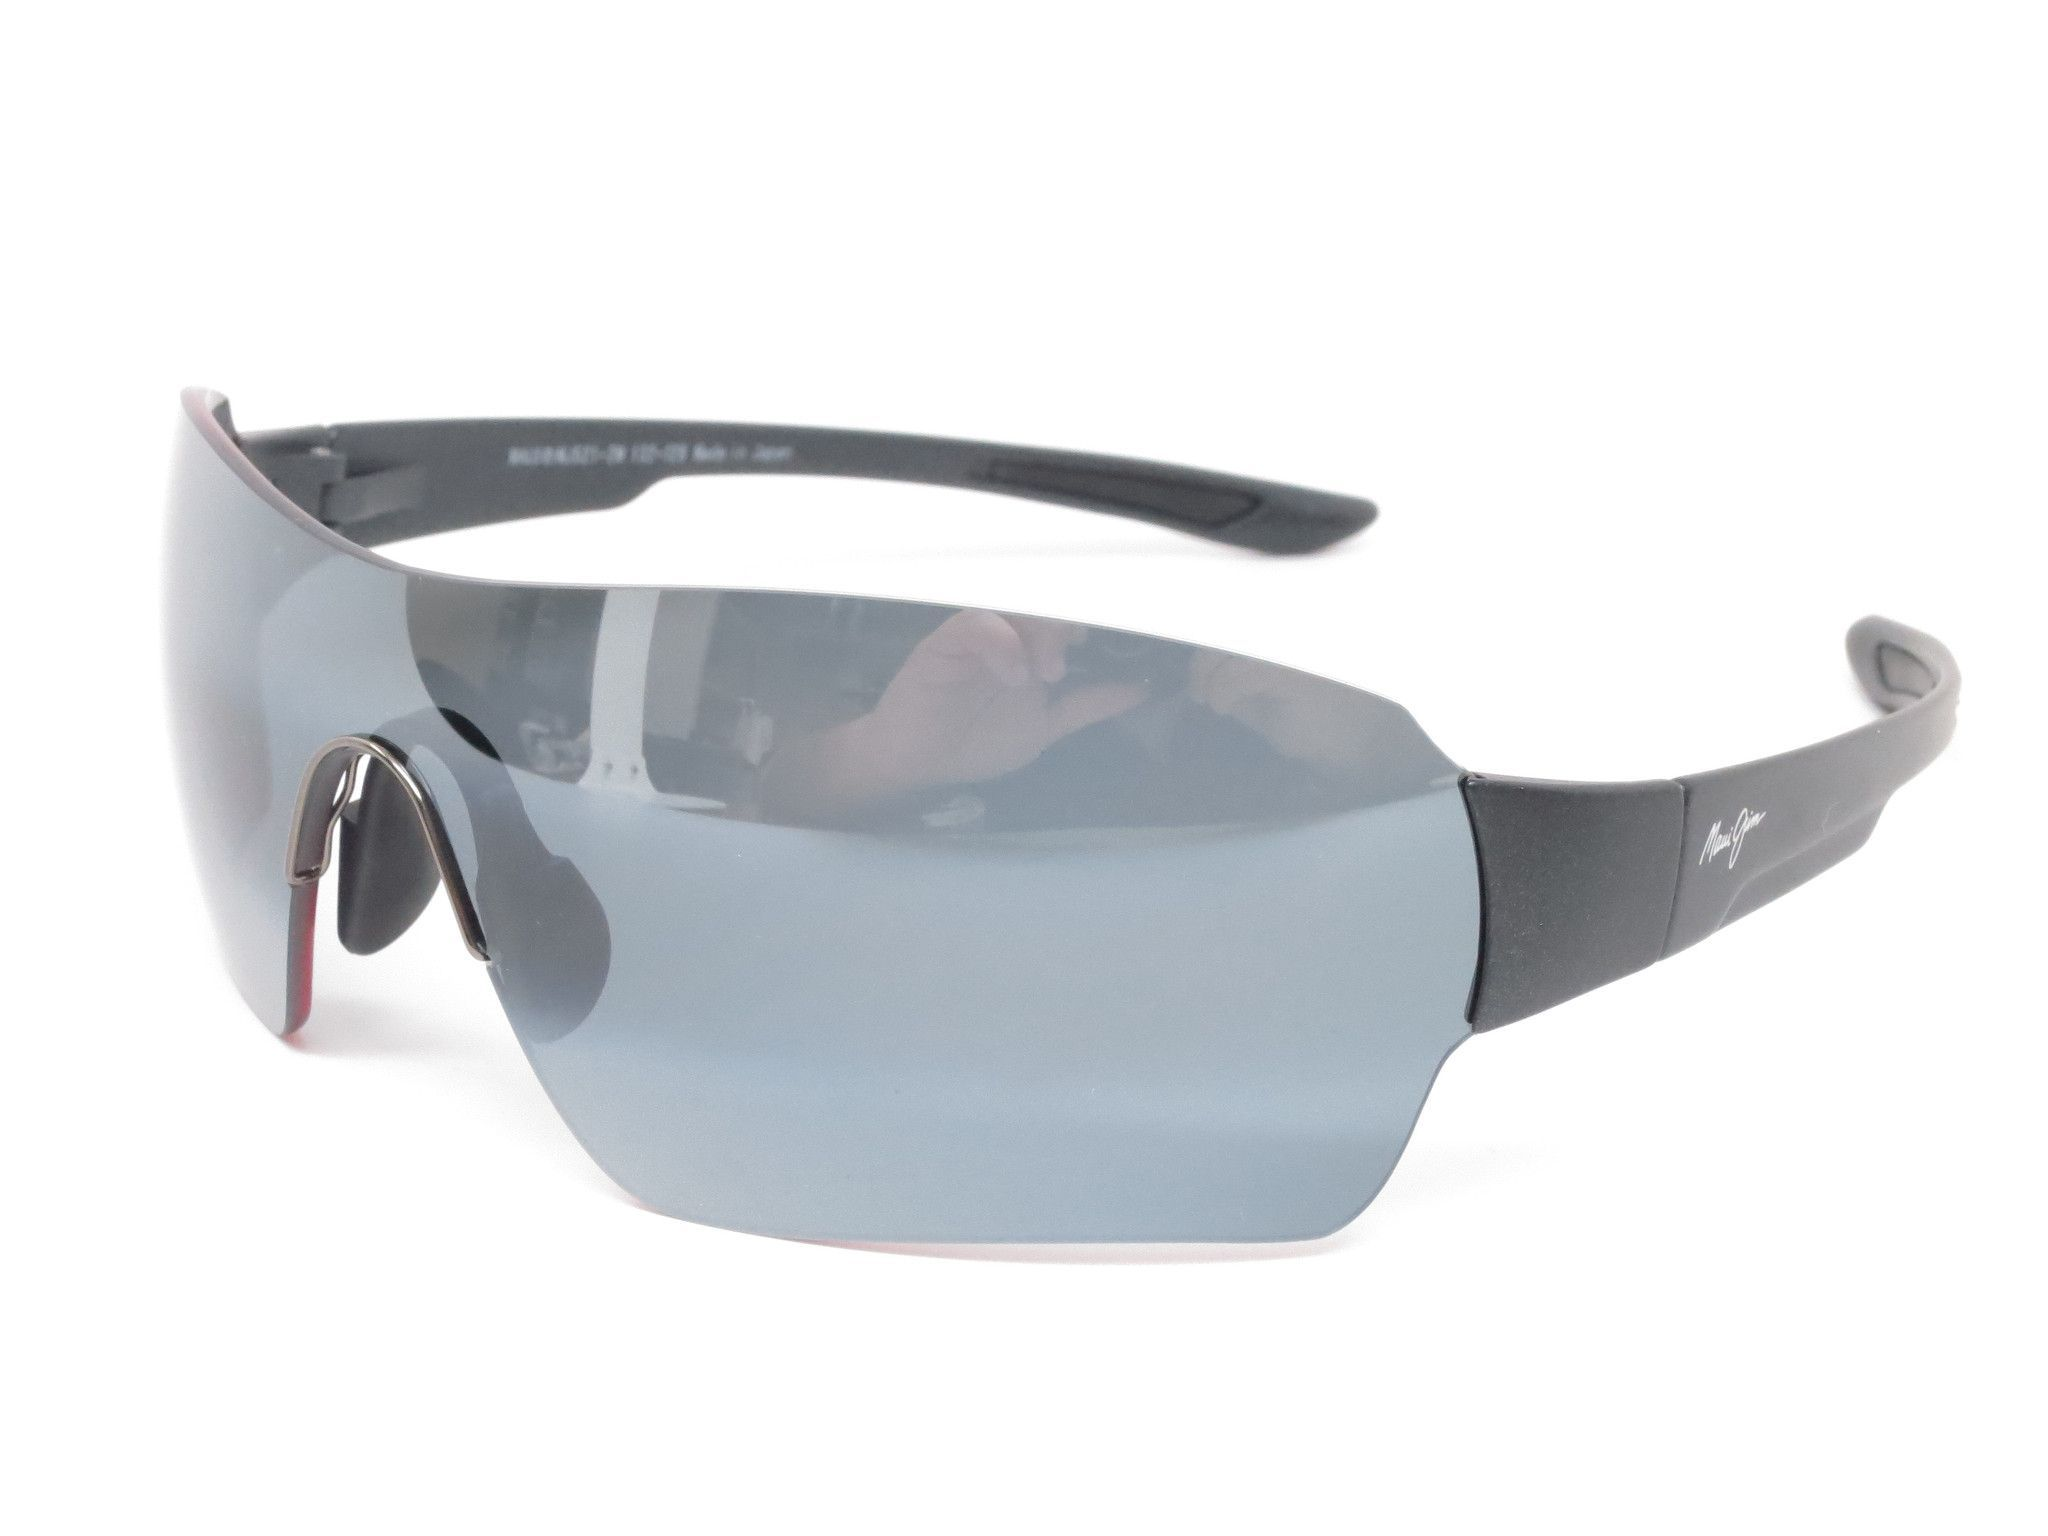 6290cff3157 Maui Jim Night Dive MJ 521-2M Matte Black Polarized Sunglasses ...